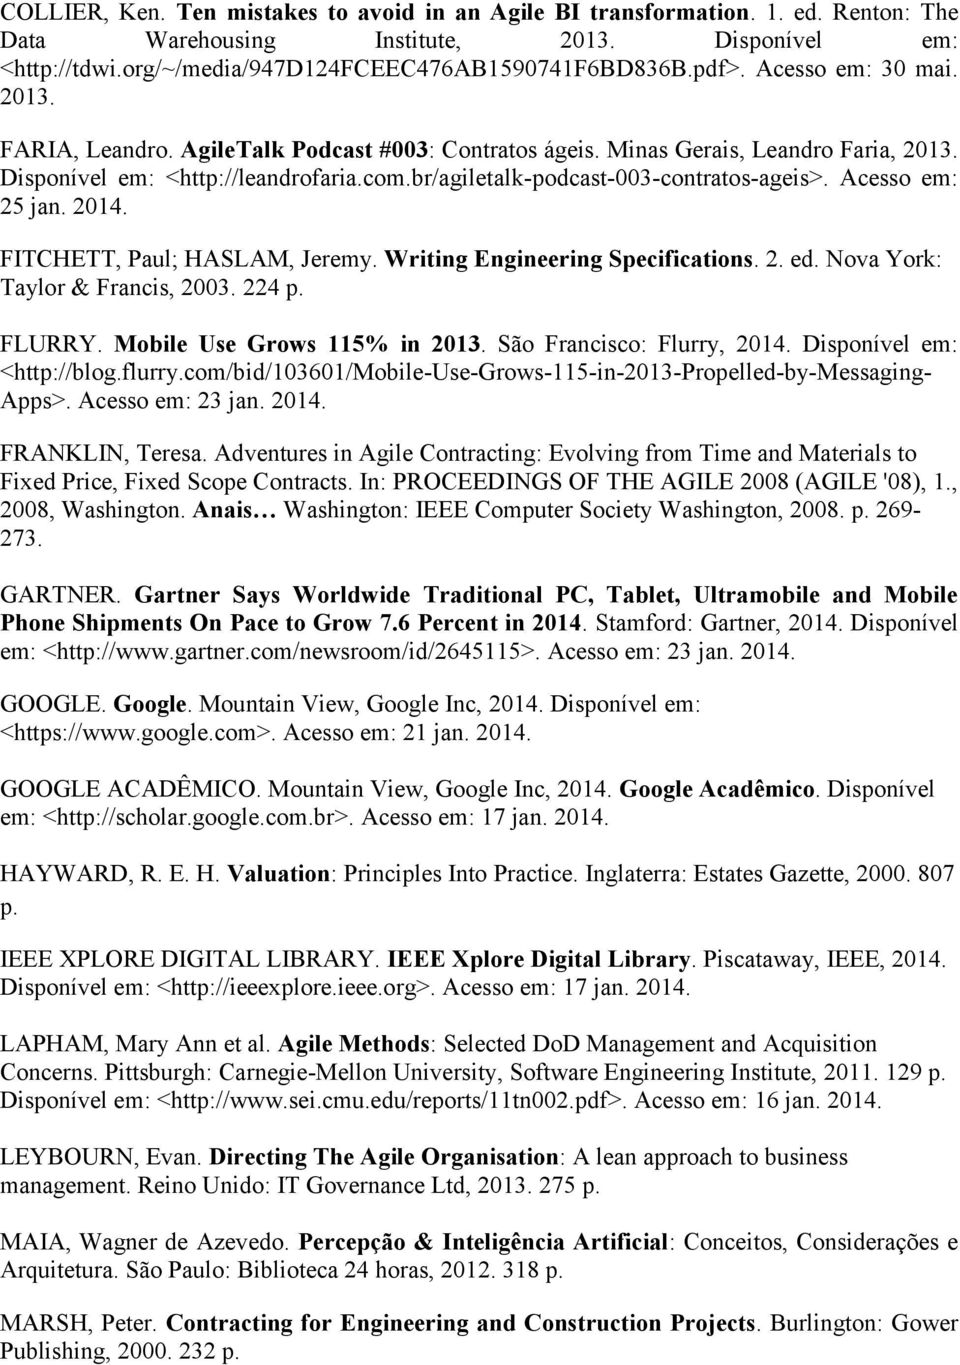 Acess em: 25 jan. 2014. FITCHETT, Paul; HASLAM, Jeremy. Writing Engineering Specificatins. 2. ed. Nva Yrk: Taylr & Francis, 2003. 224 p. FLURRY. Mbile Use Grws 115% in 2013. Sã Francisc: Flurry, 2014.